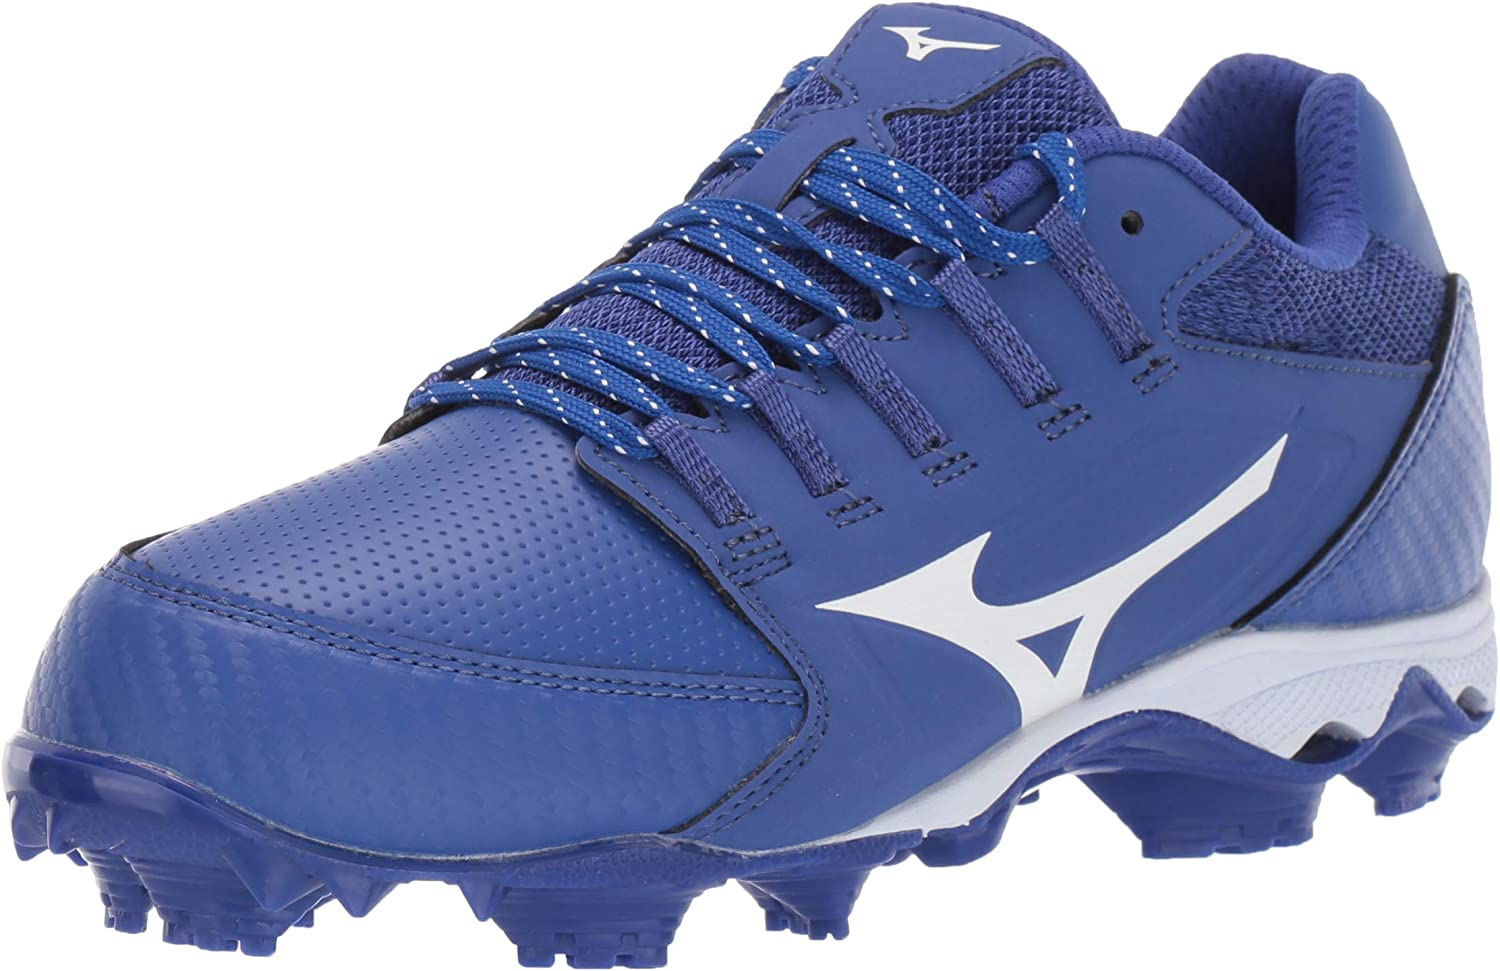 Mizuno Women's 9-Spike Advanced Direct store Finch Elite Cleat TPU Ranking TOP13 Molded A 4